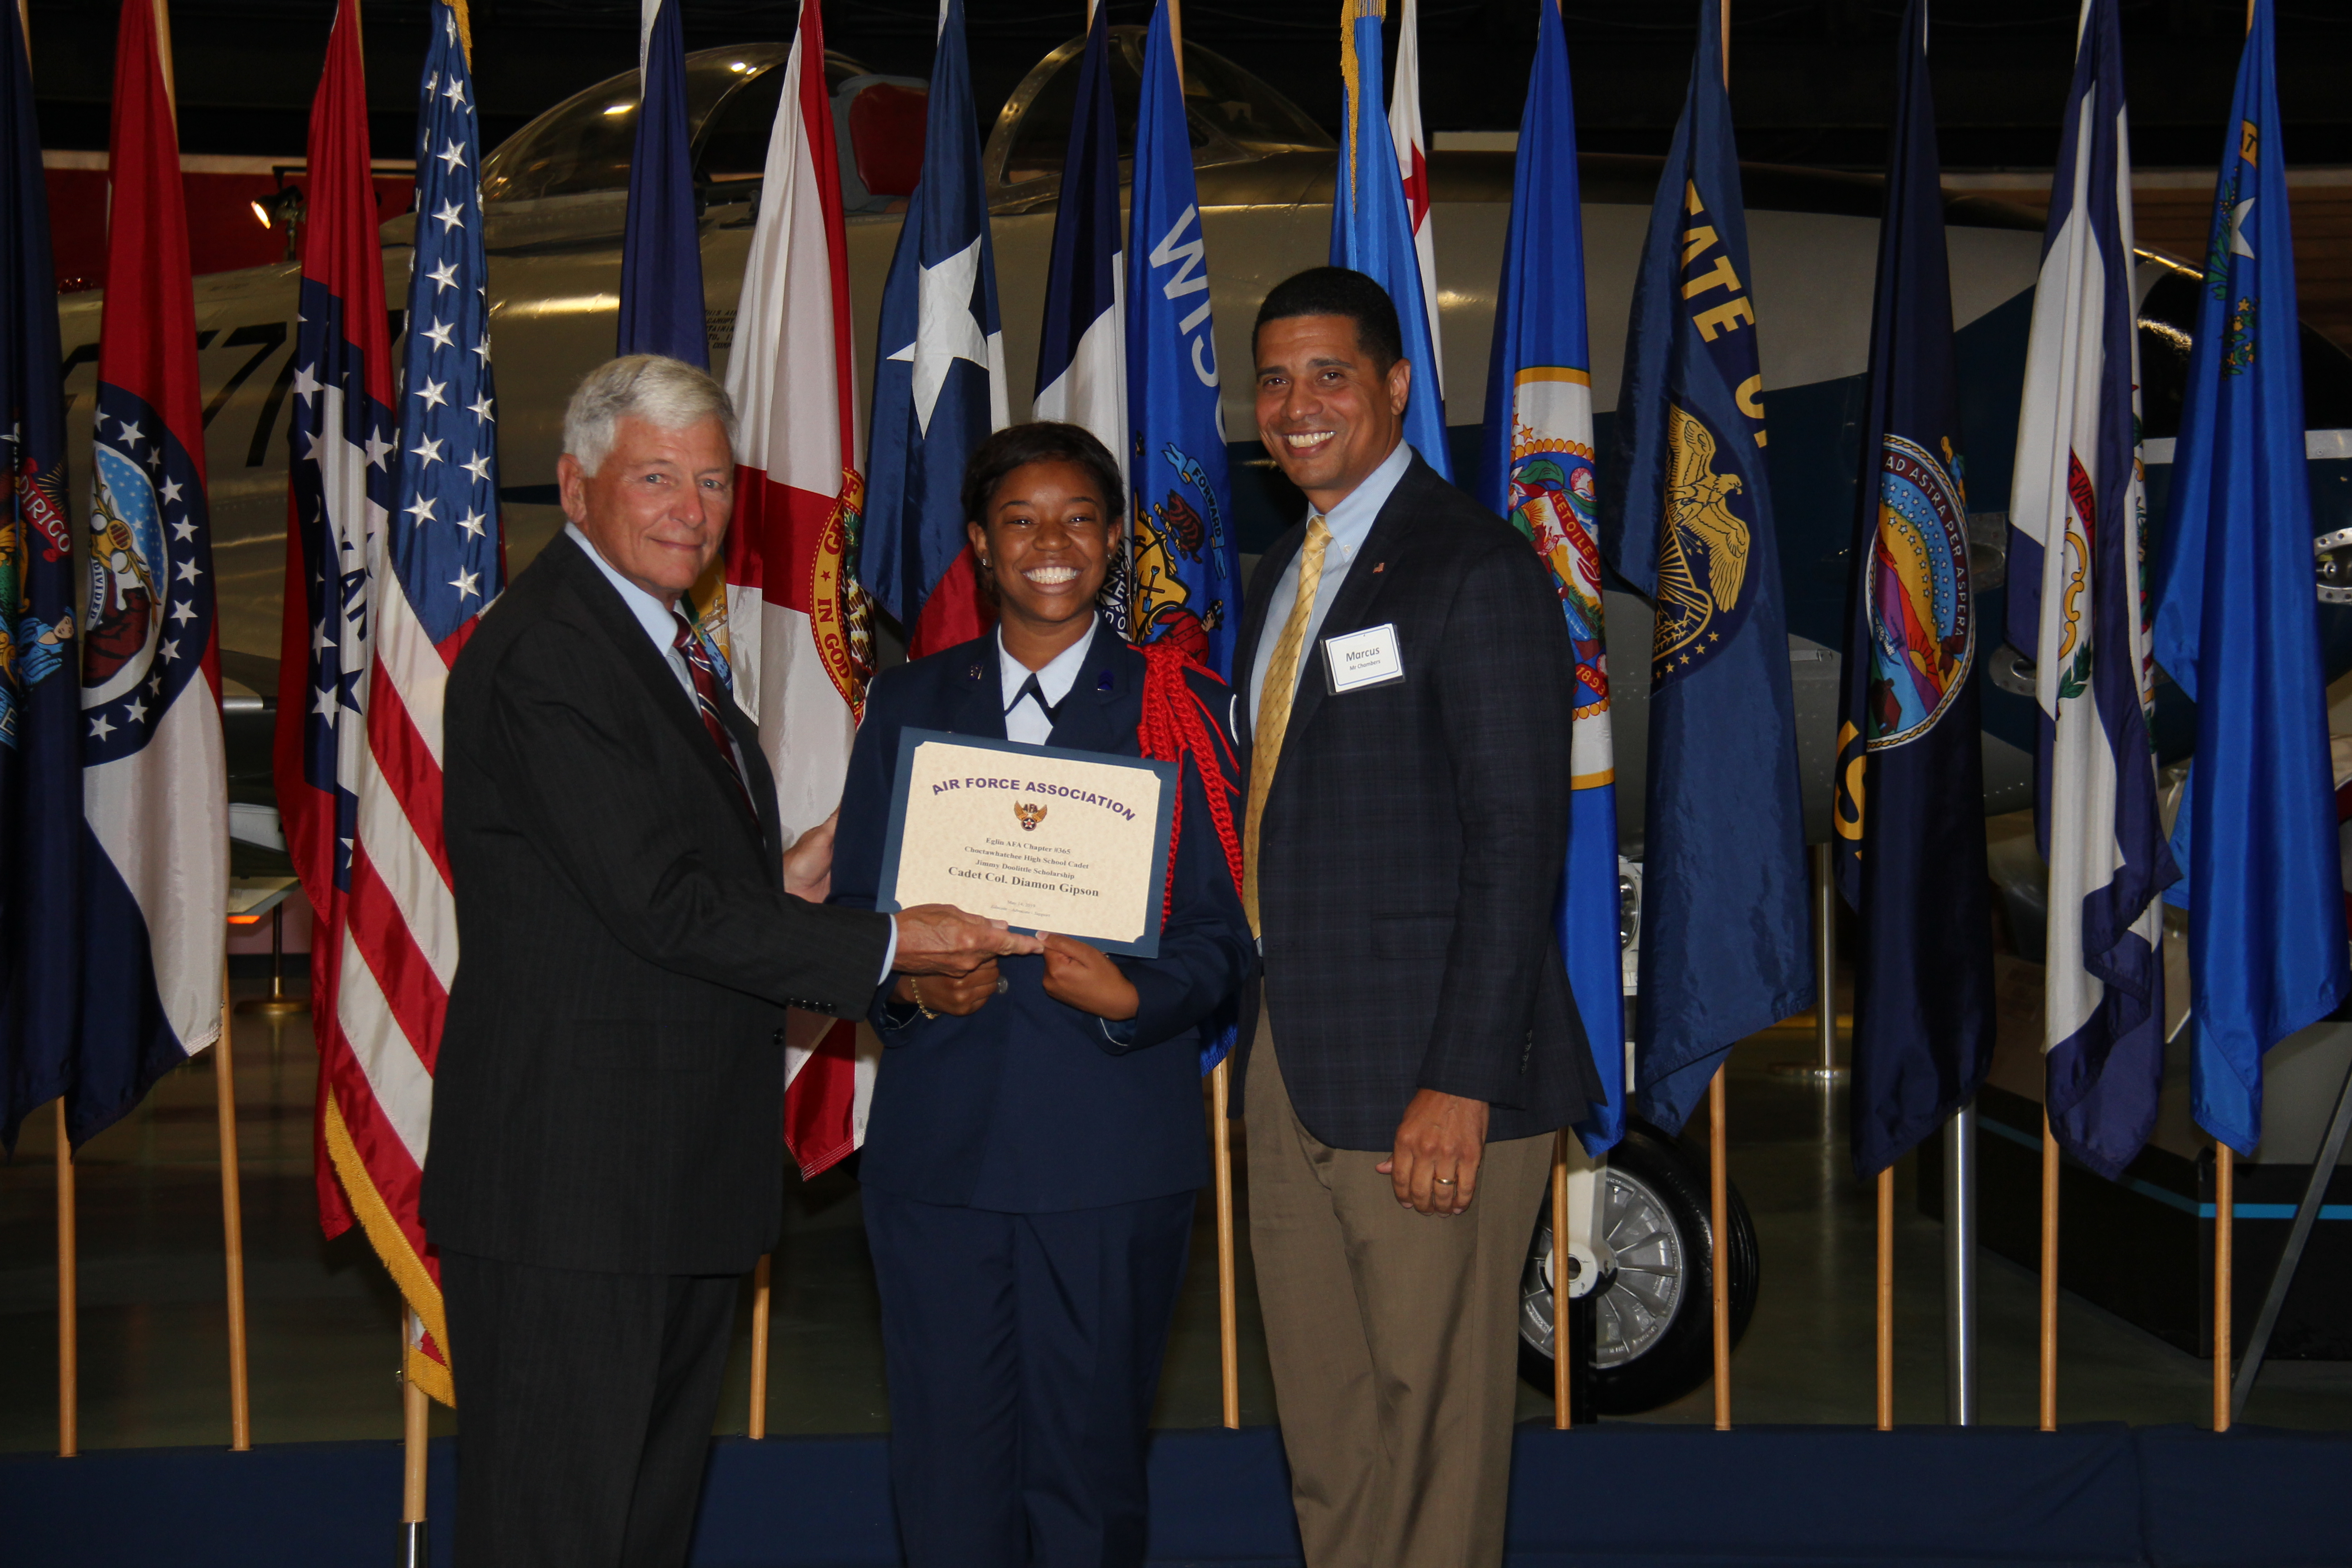 Cadet Colonel Diamon Gipson, Choctawhatchee High School